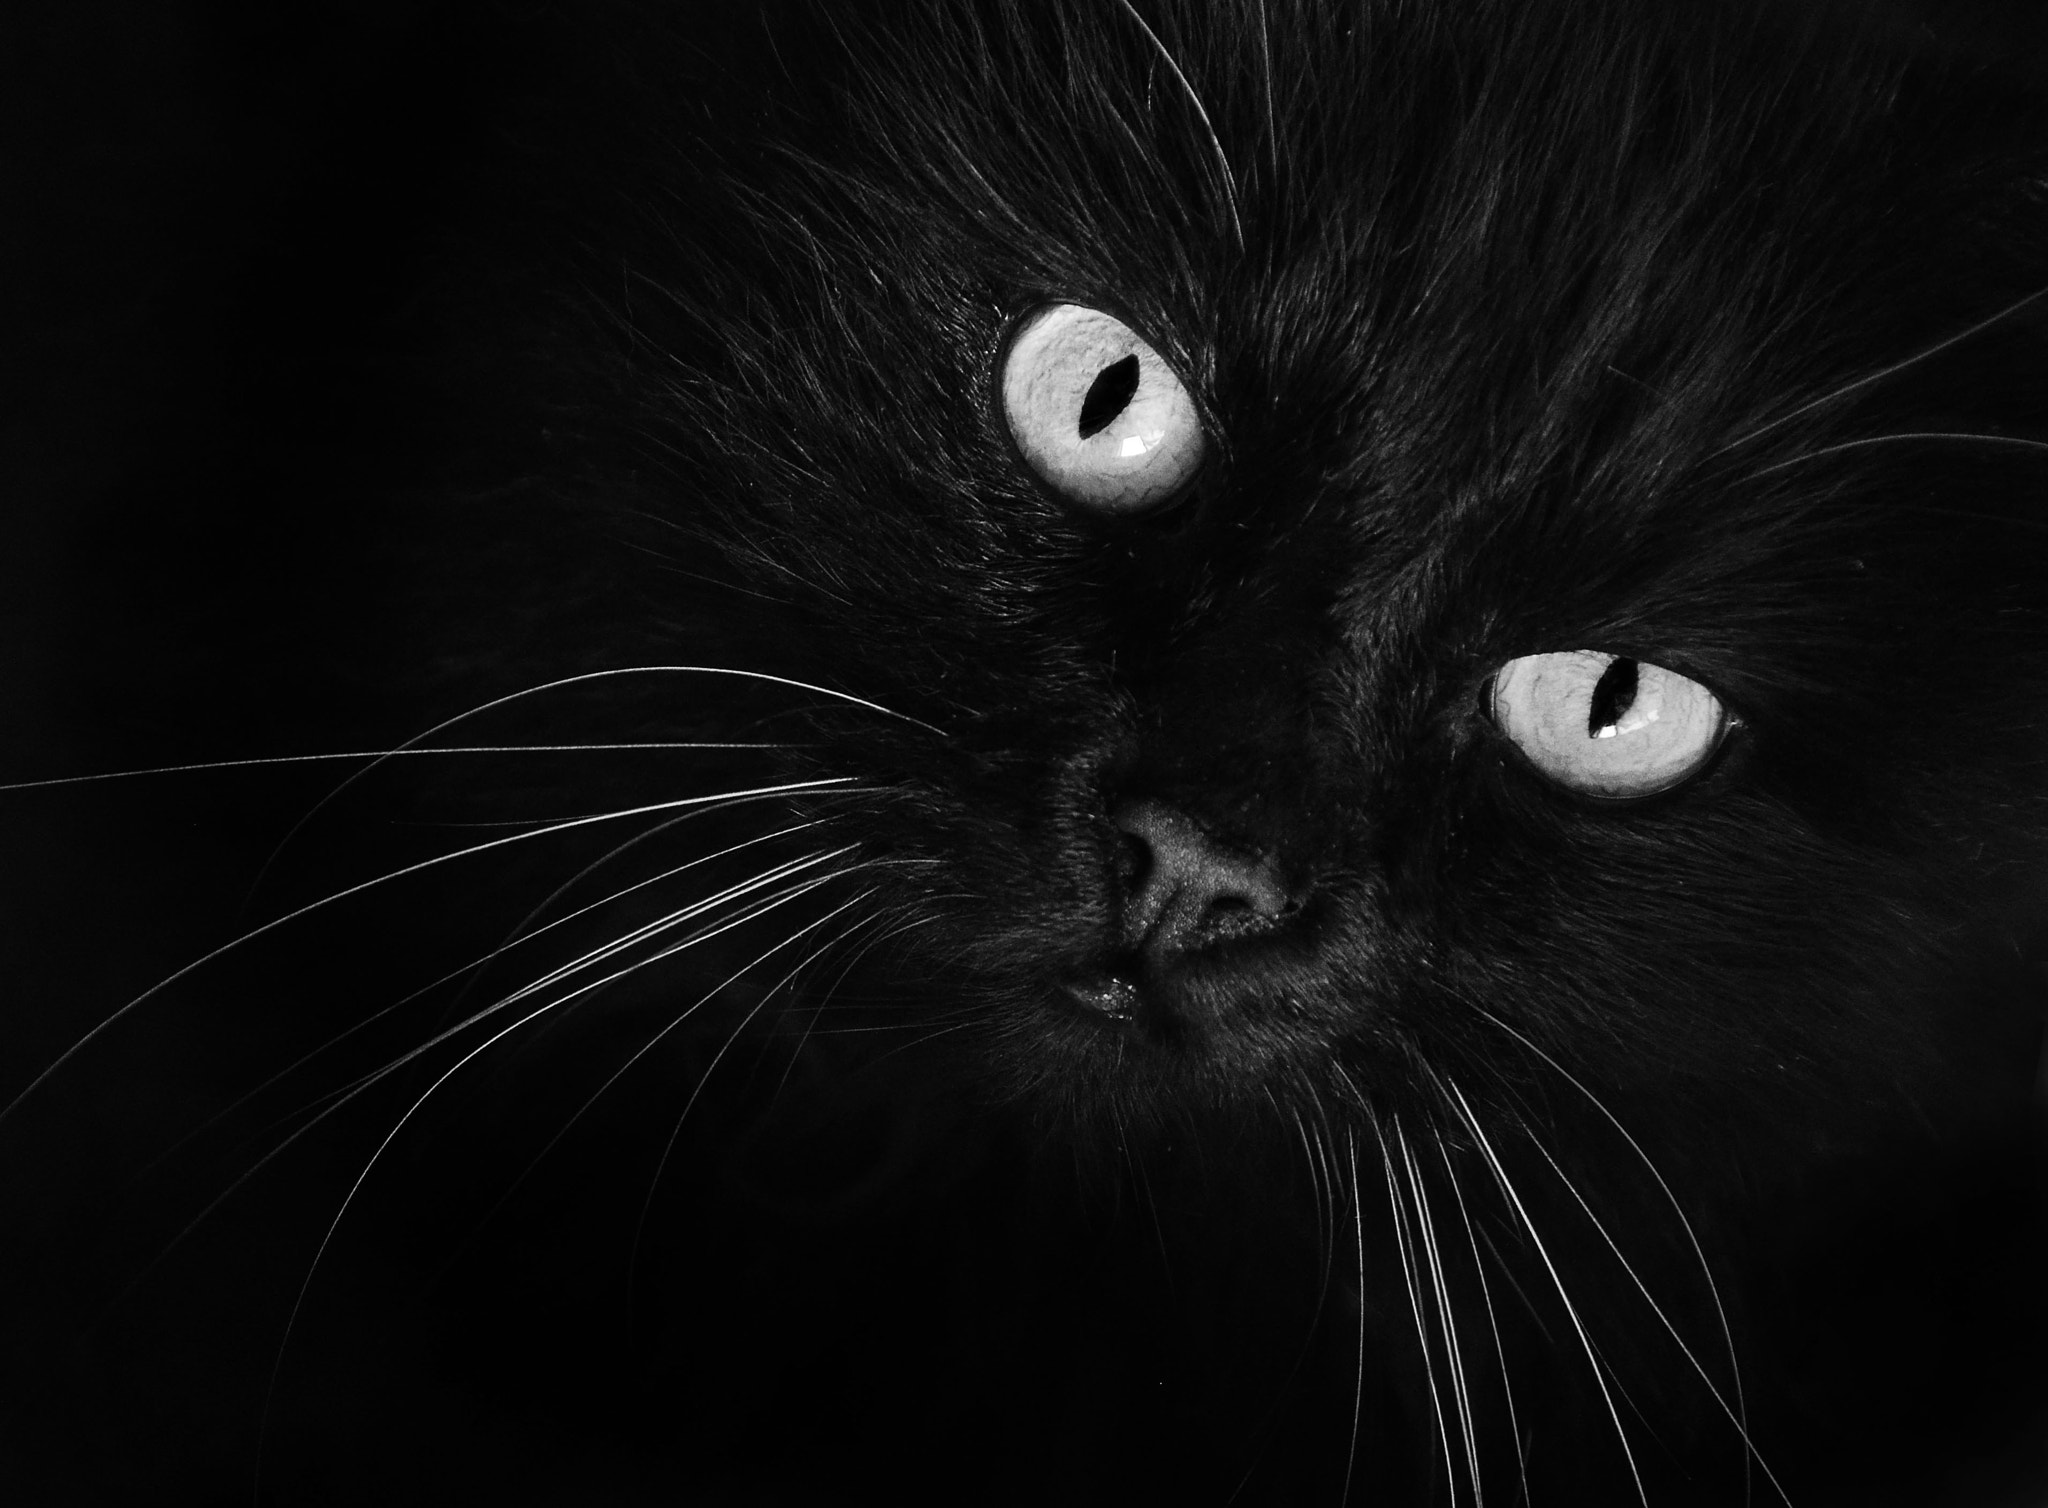 Photograph Black cat by Rebirth LG on 500px